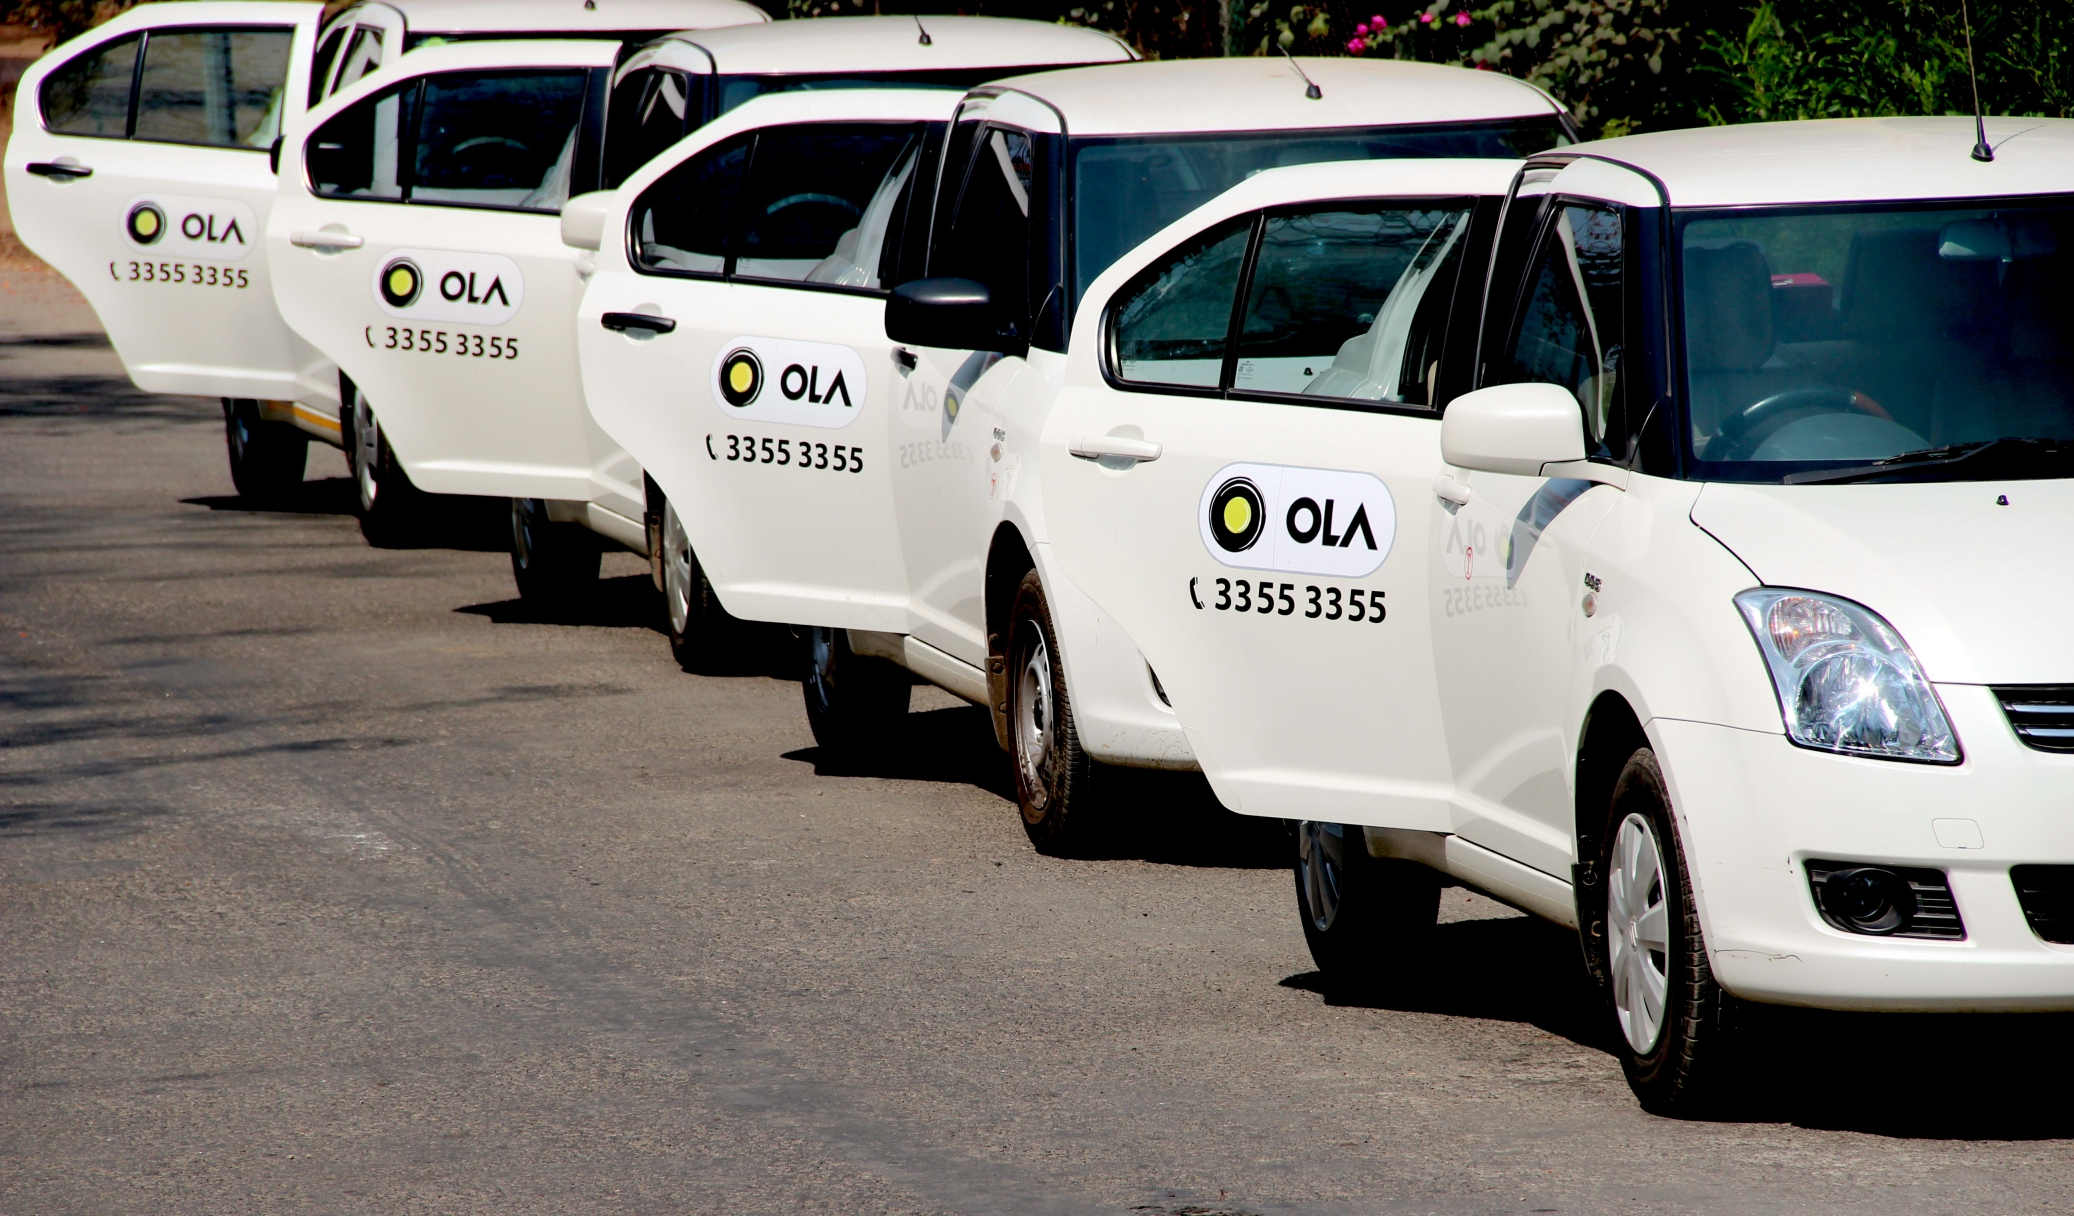 Data suggests Uber is trailing far behind rival Ola in India